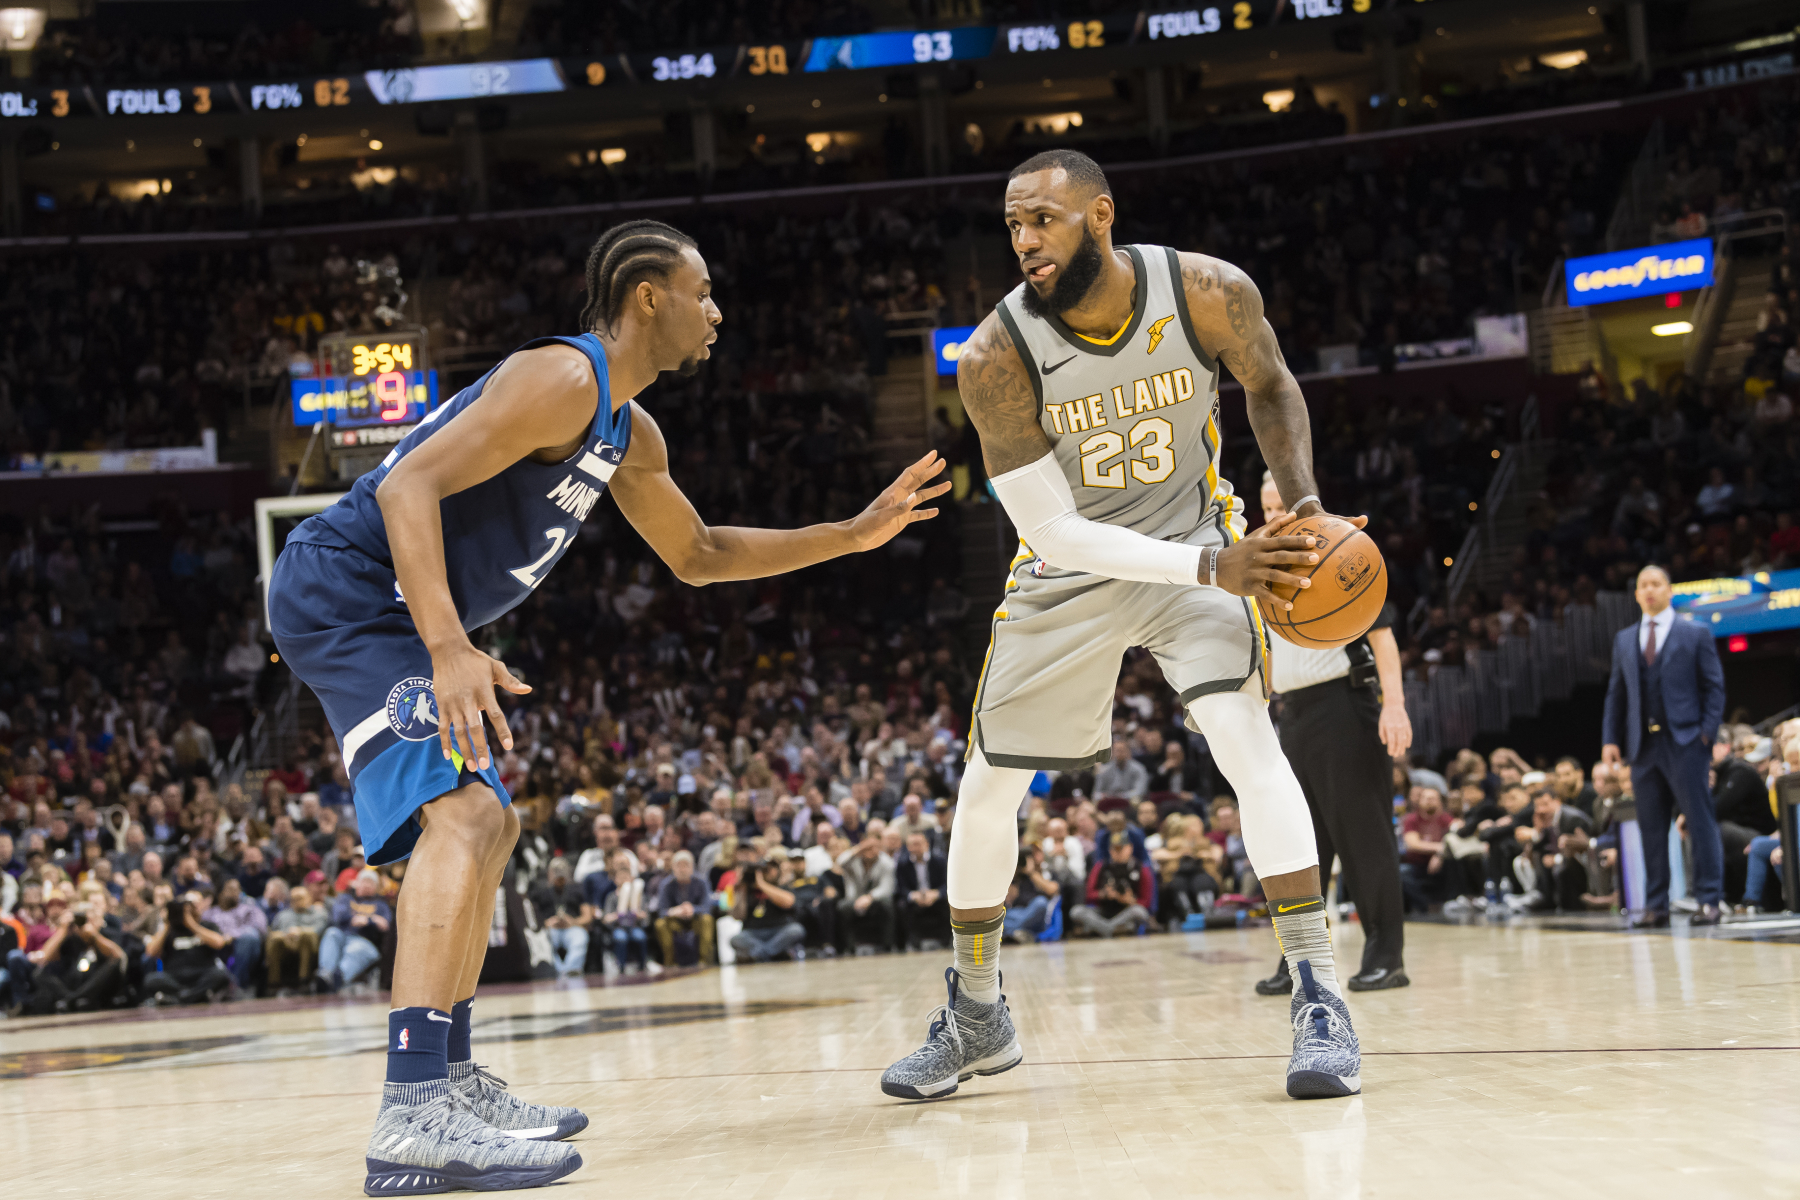 When LeBron James returned to the Cavaliers, he made one move that proved he probably had no intention of playing with Andrew Wiggins.